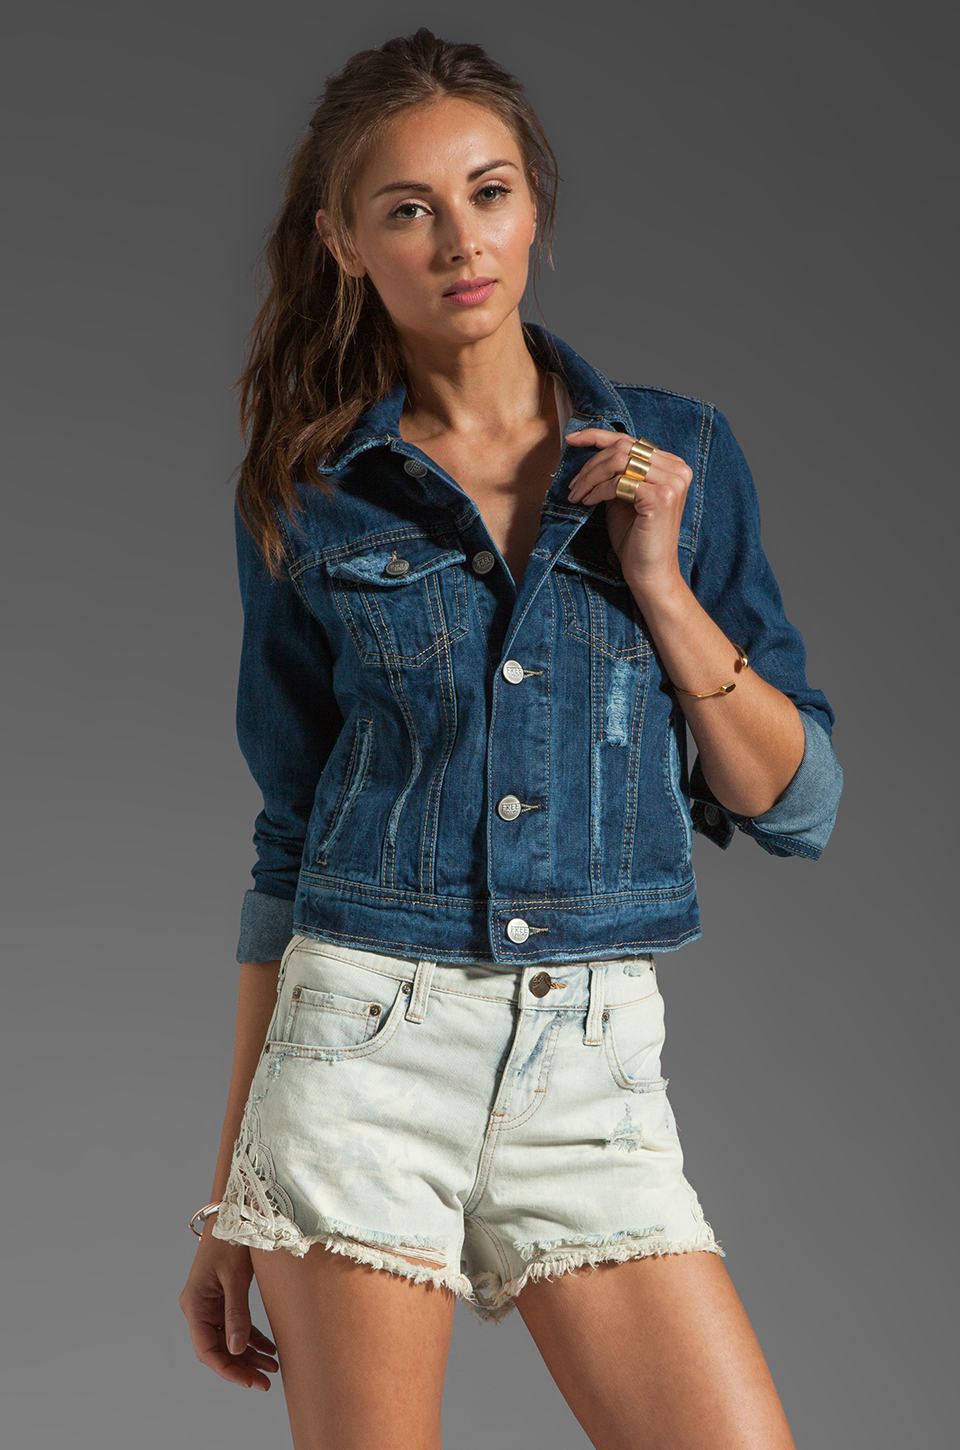 Free People Denim Jacket in True Blue